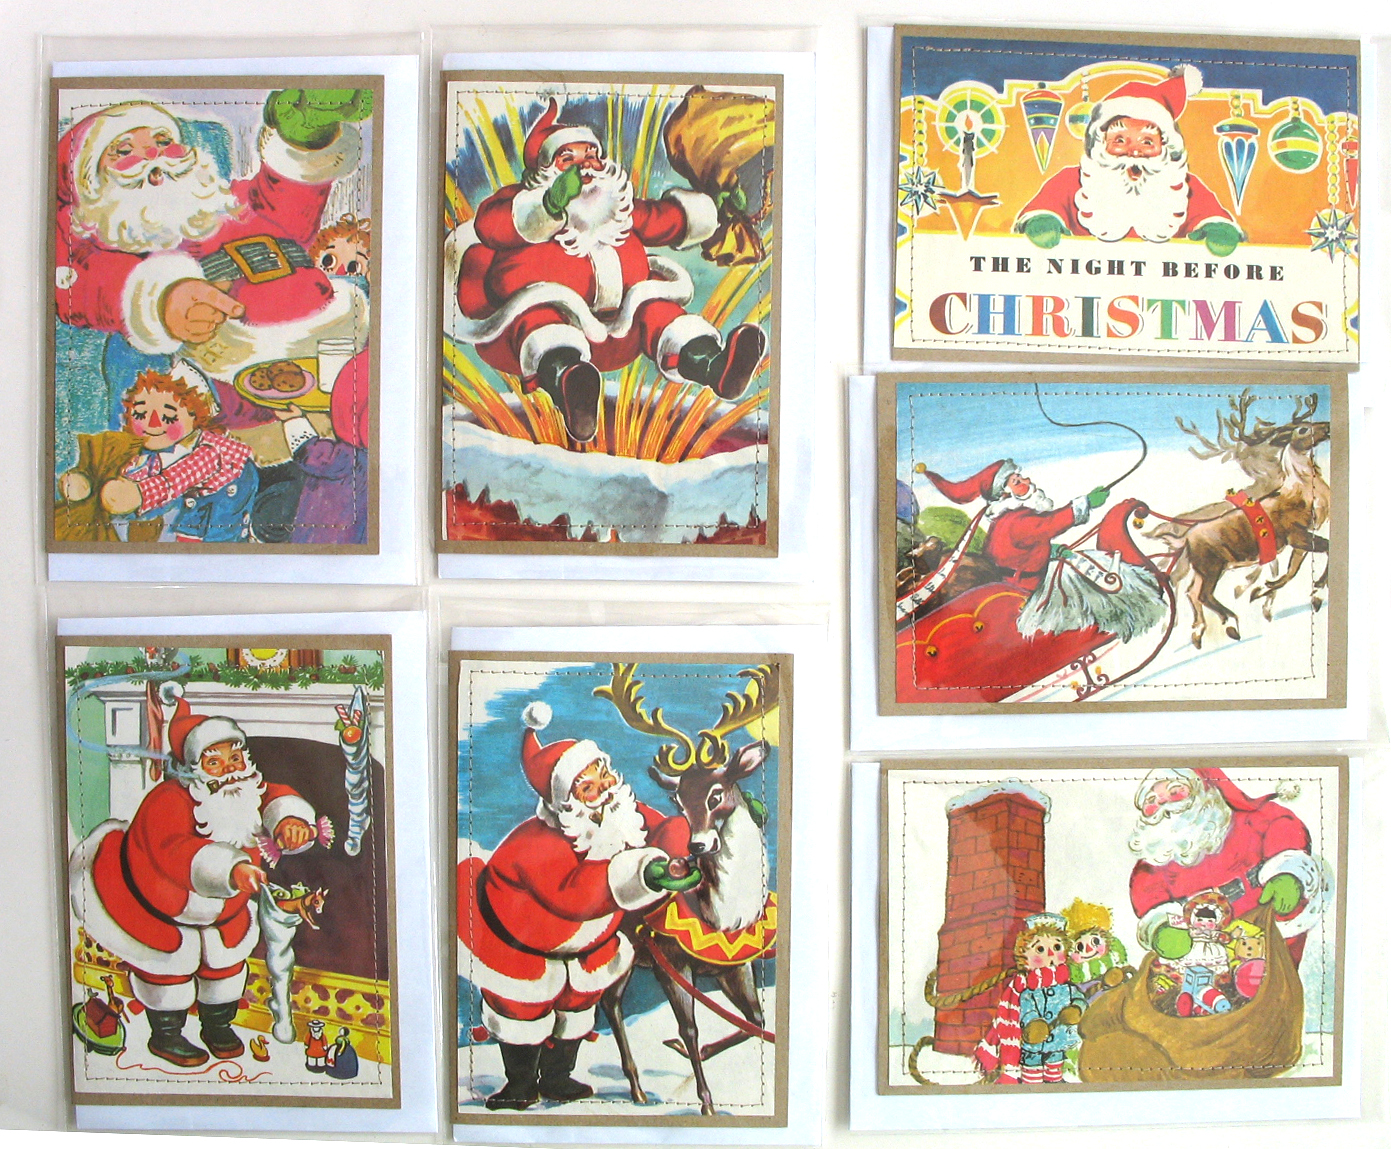 Merry go round handmade christmas retro vintage upcycled handmade these cards are so sweet they would be enjoyed by the young us nostalgic older folk small australian retail i am able to consider wholesale quantities kristyandbryce Gallery